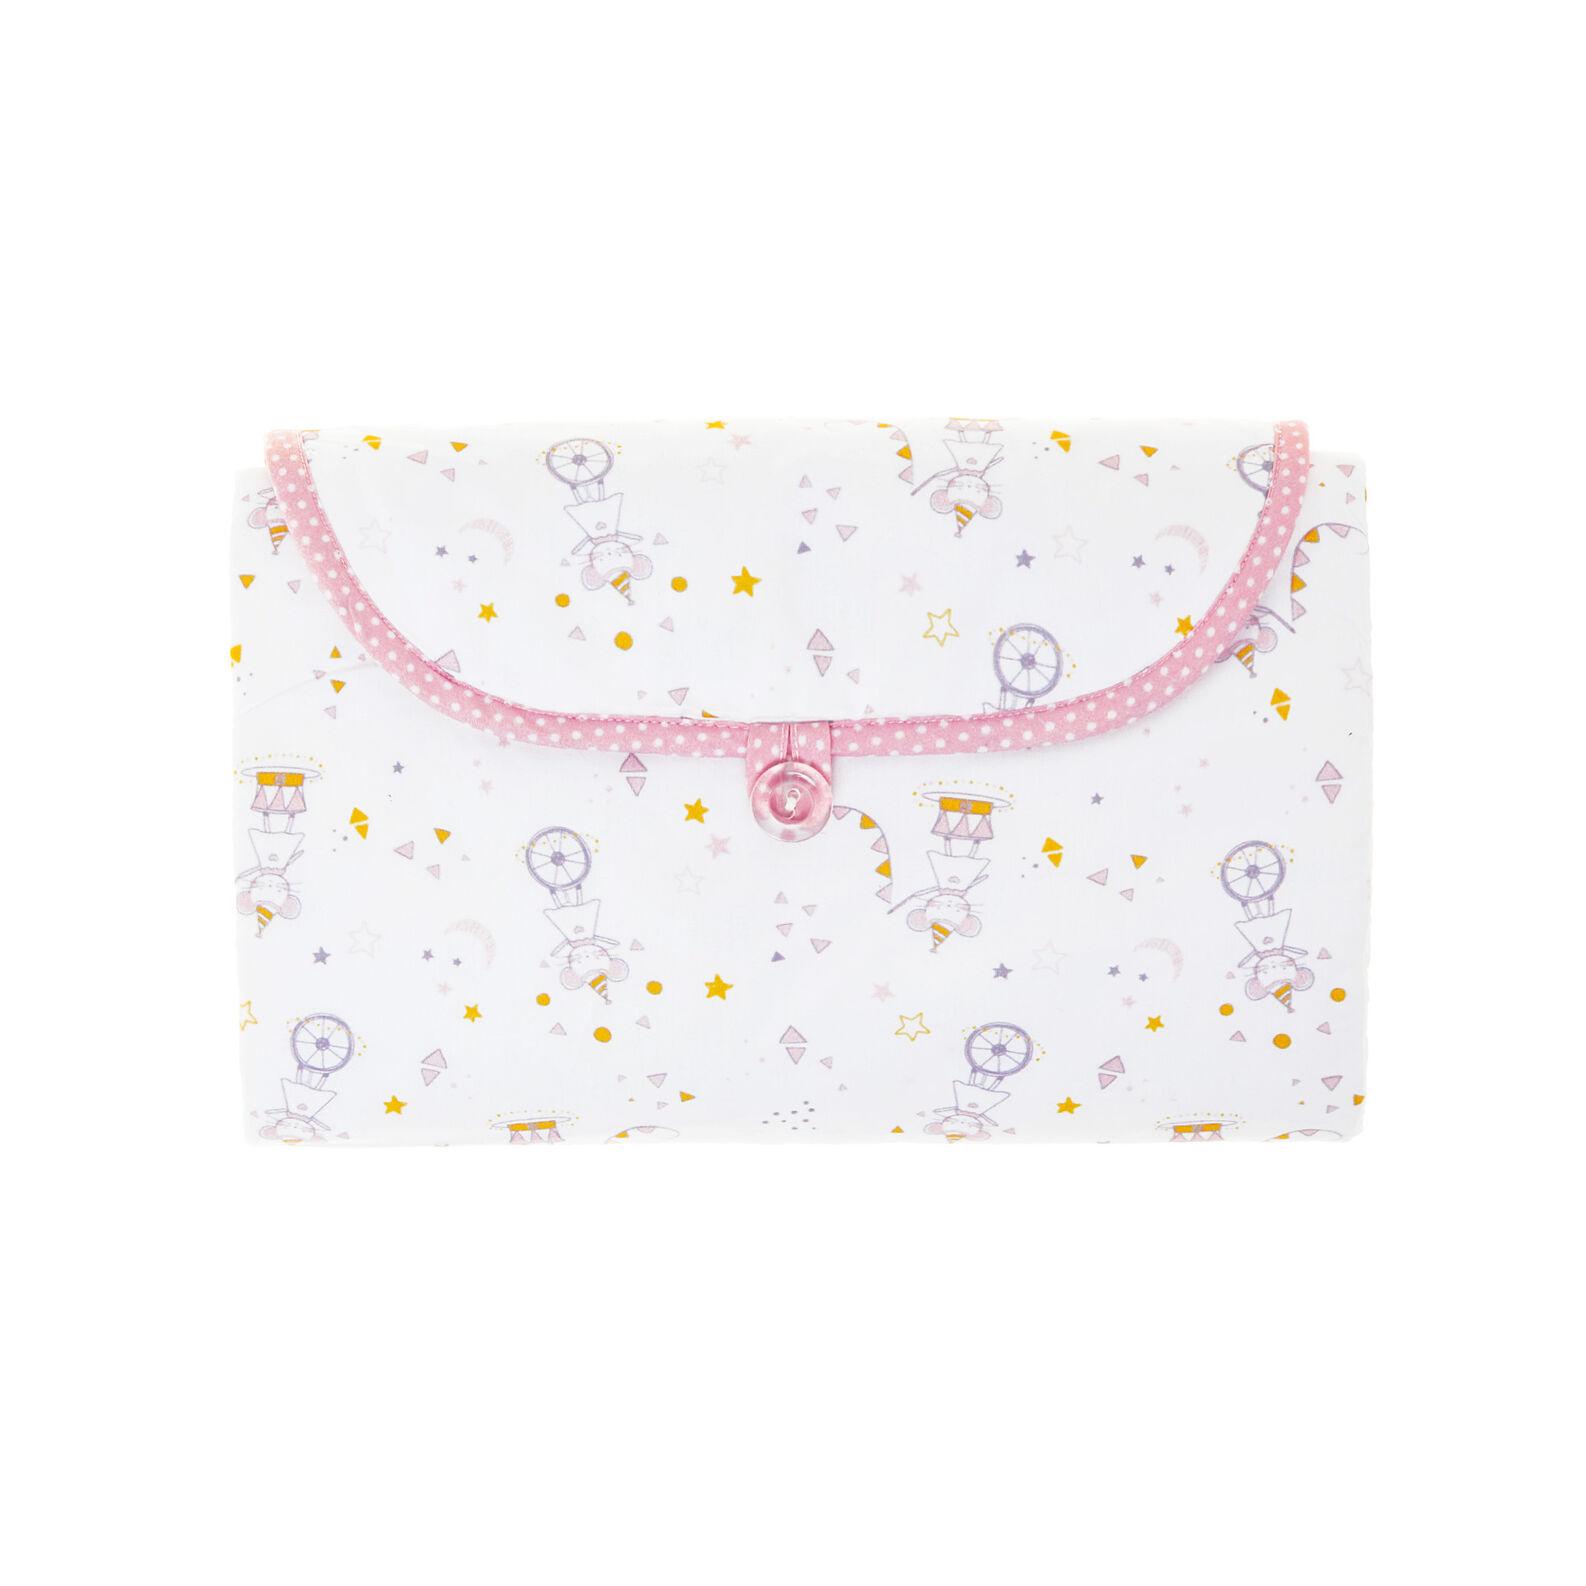 100% cotton percale folding changing mat with girl mice and polka dots